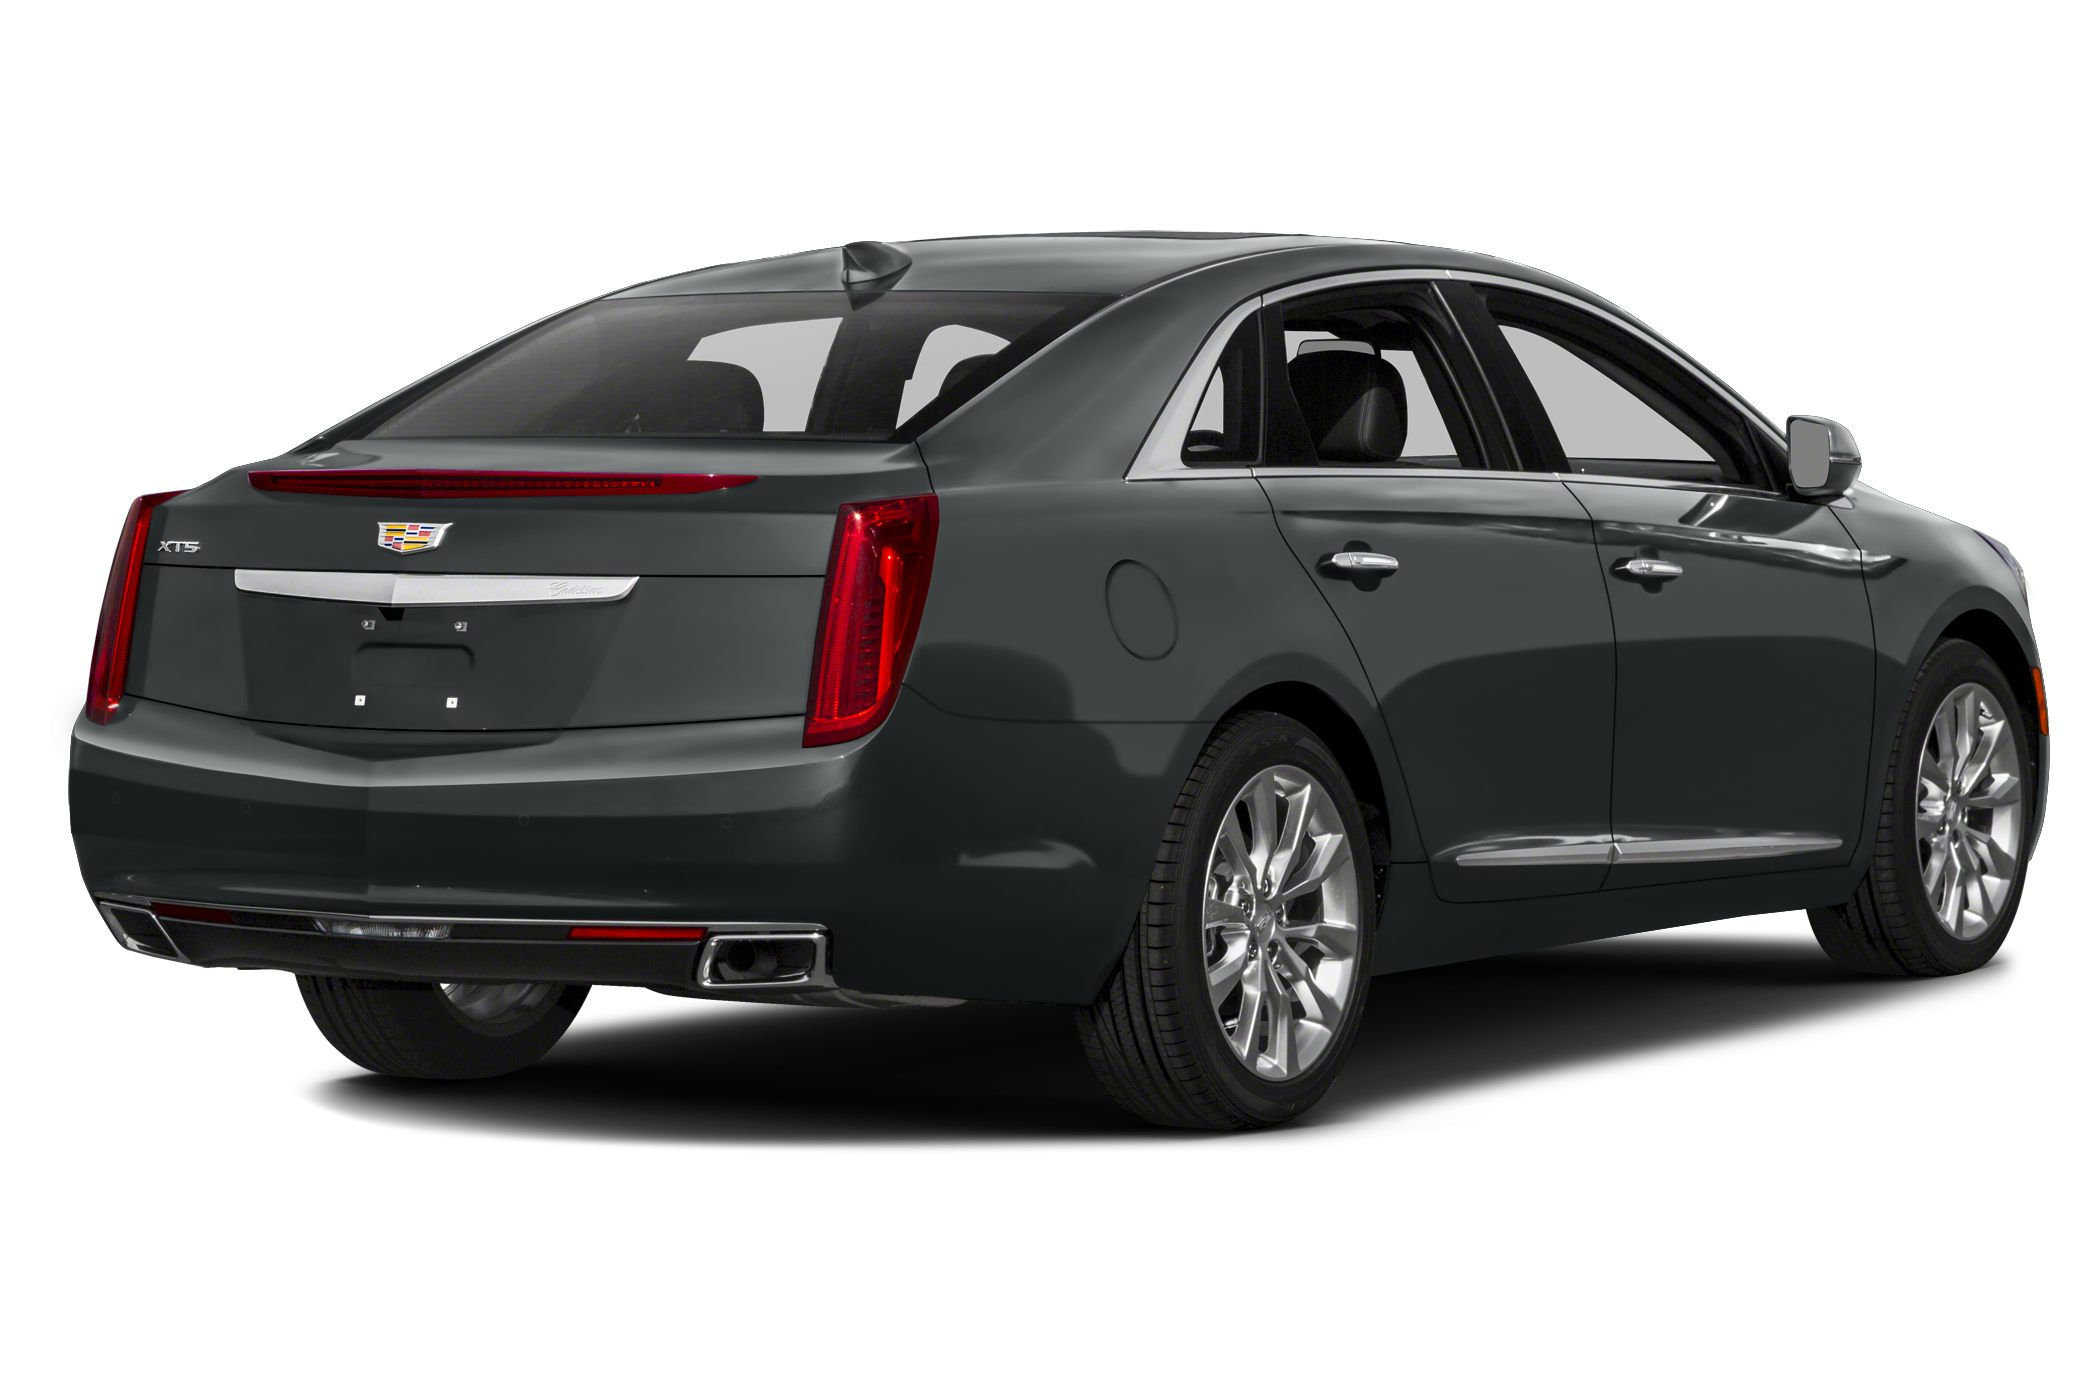 2017 cadillac xts deals prices incentives leases overview carsdirect. Black Bedroom Furniture Sets. Home Design Ideas